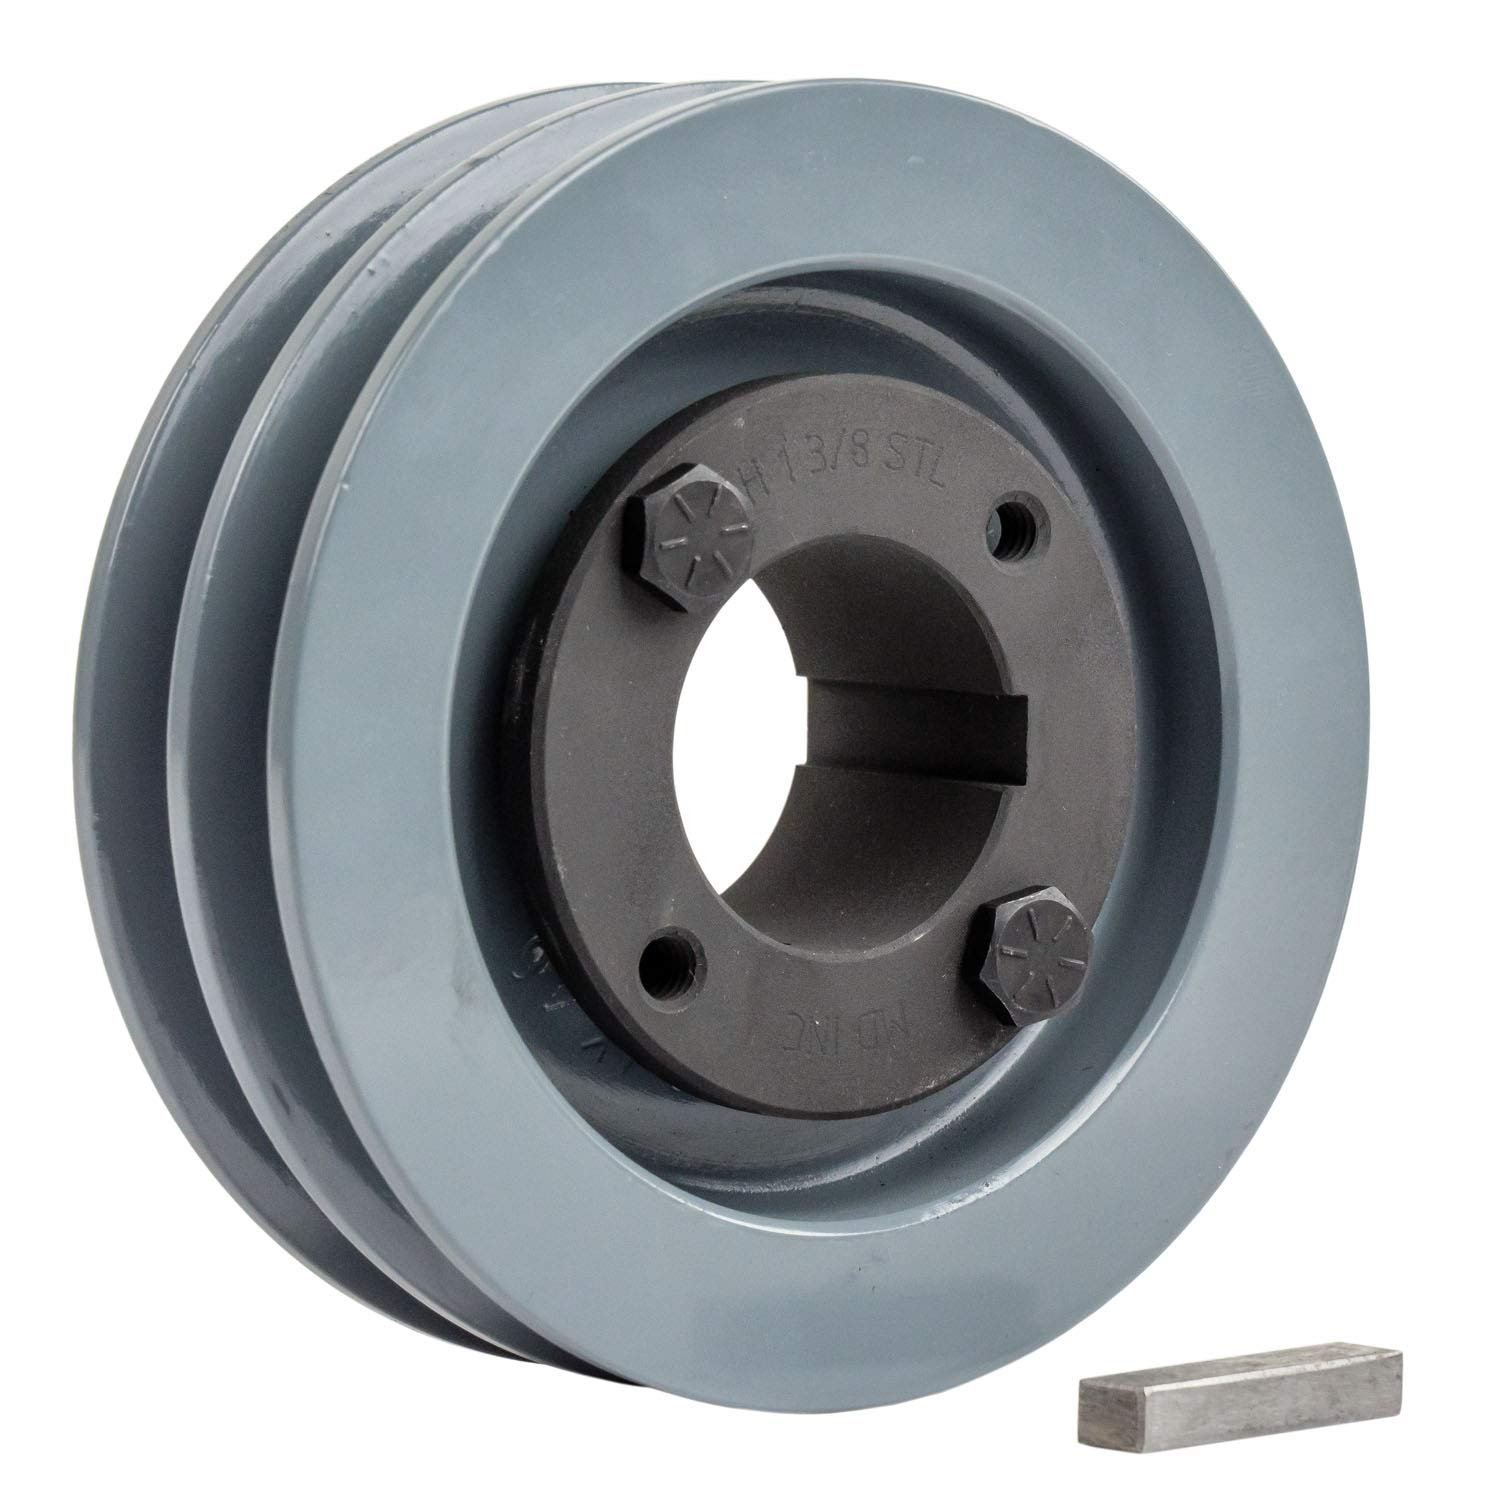 2 Piece Cast Iron 4'' 2 Groove Dual Belt A Section 4L Pulley with 1-3/8'' Sheave Bushing 2AK41H by Masterdrive